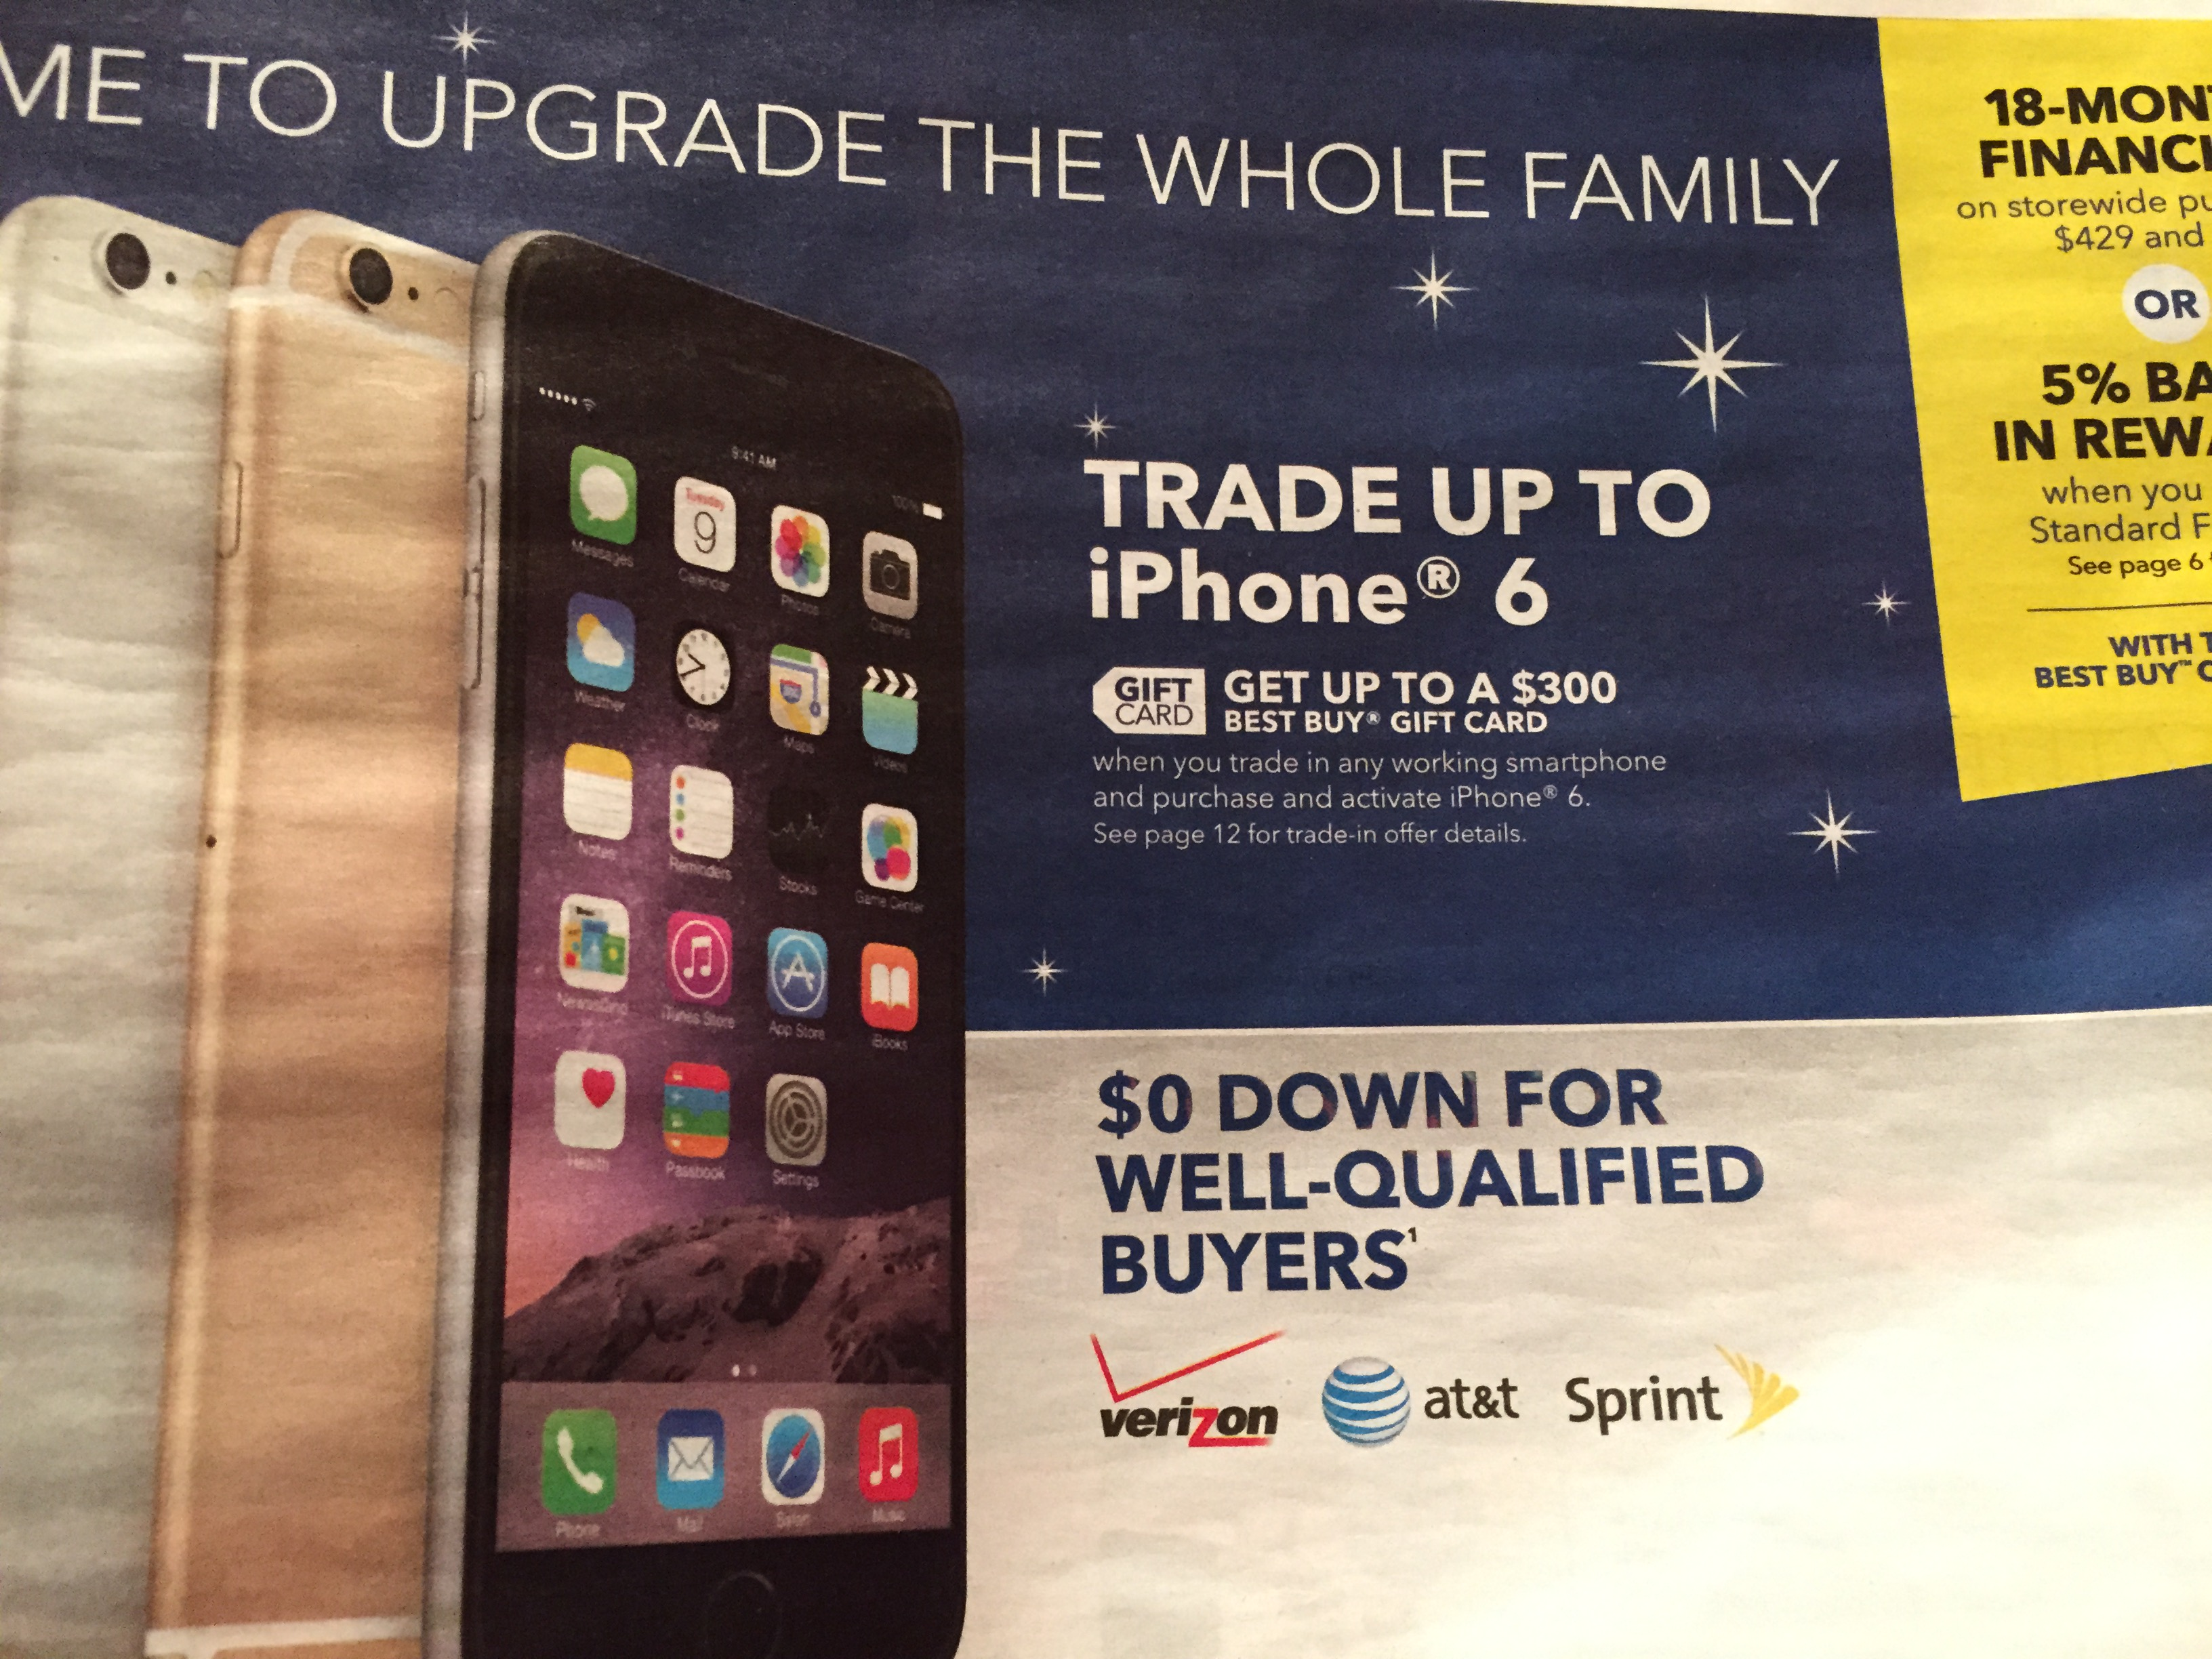 Best Buy's iPhone 6 deals heat up with big trade-in values and free Gamer's Club Unlocked.